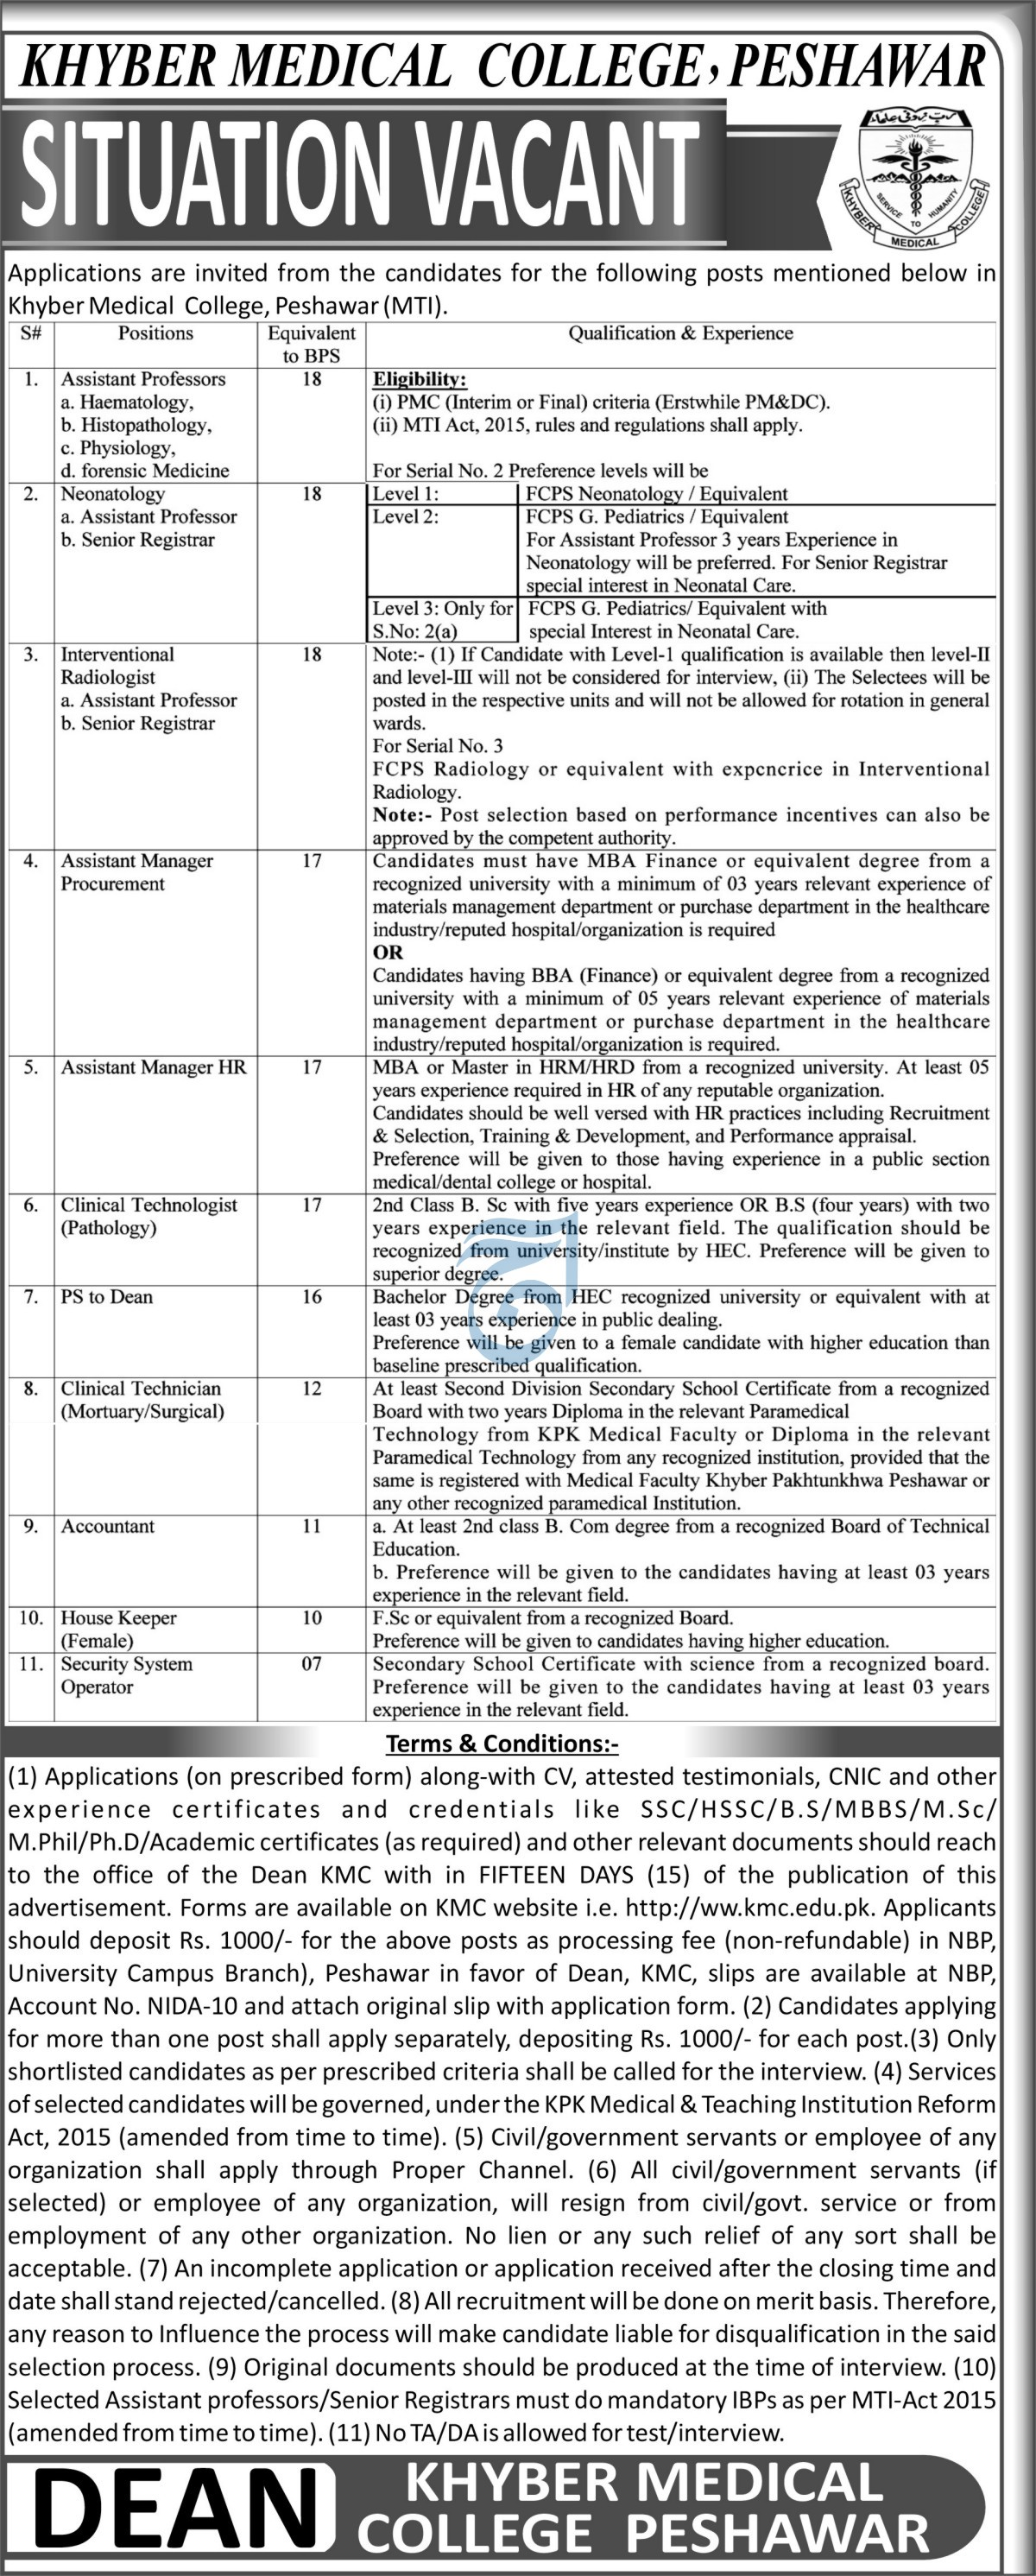 Accountant jobs in Peshawar at Khyber Medical College